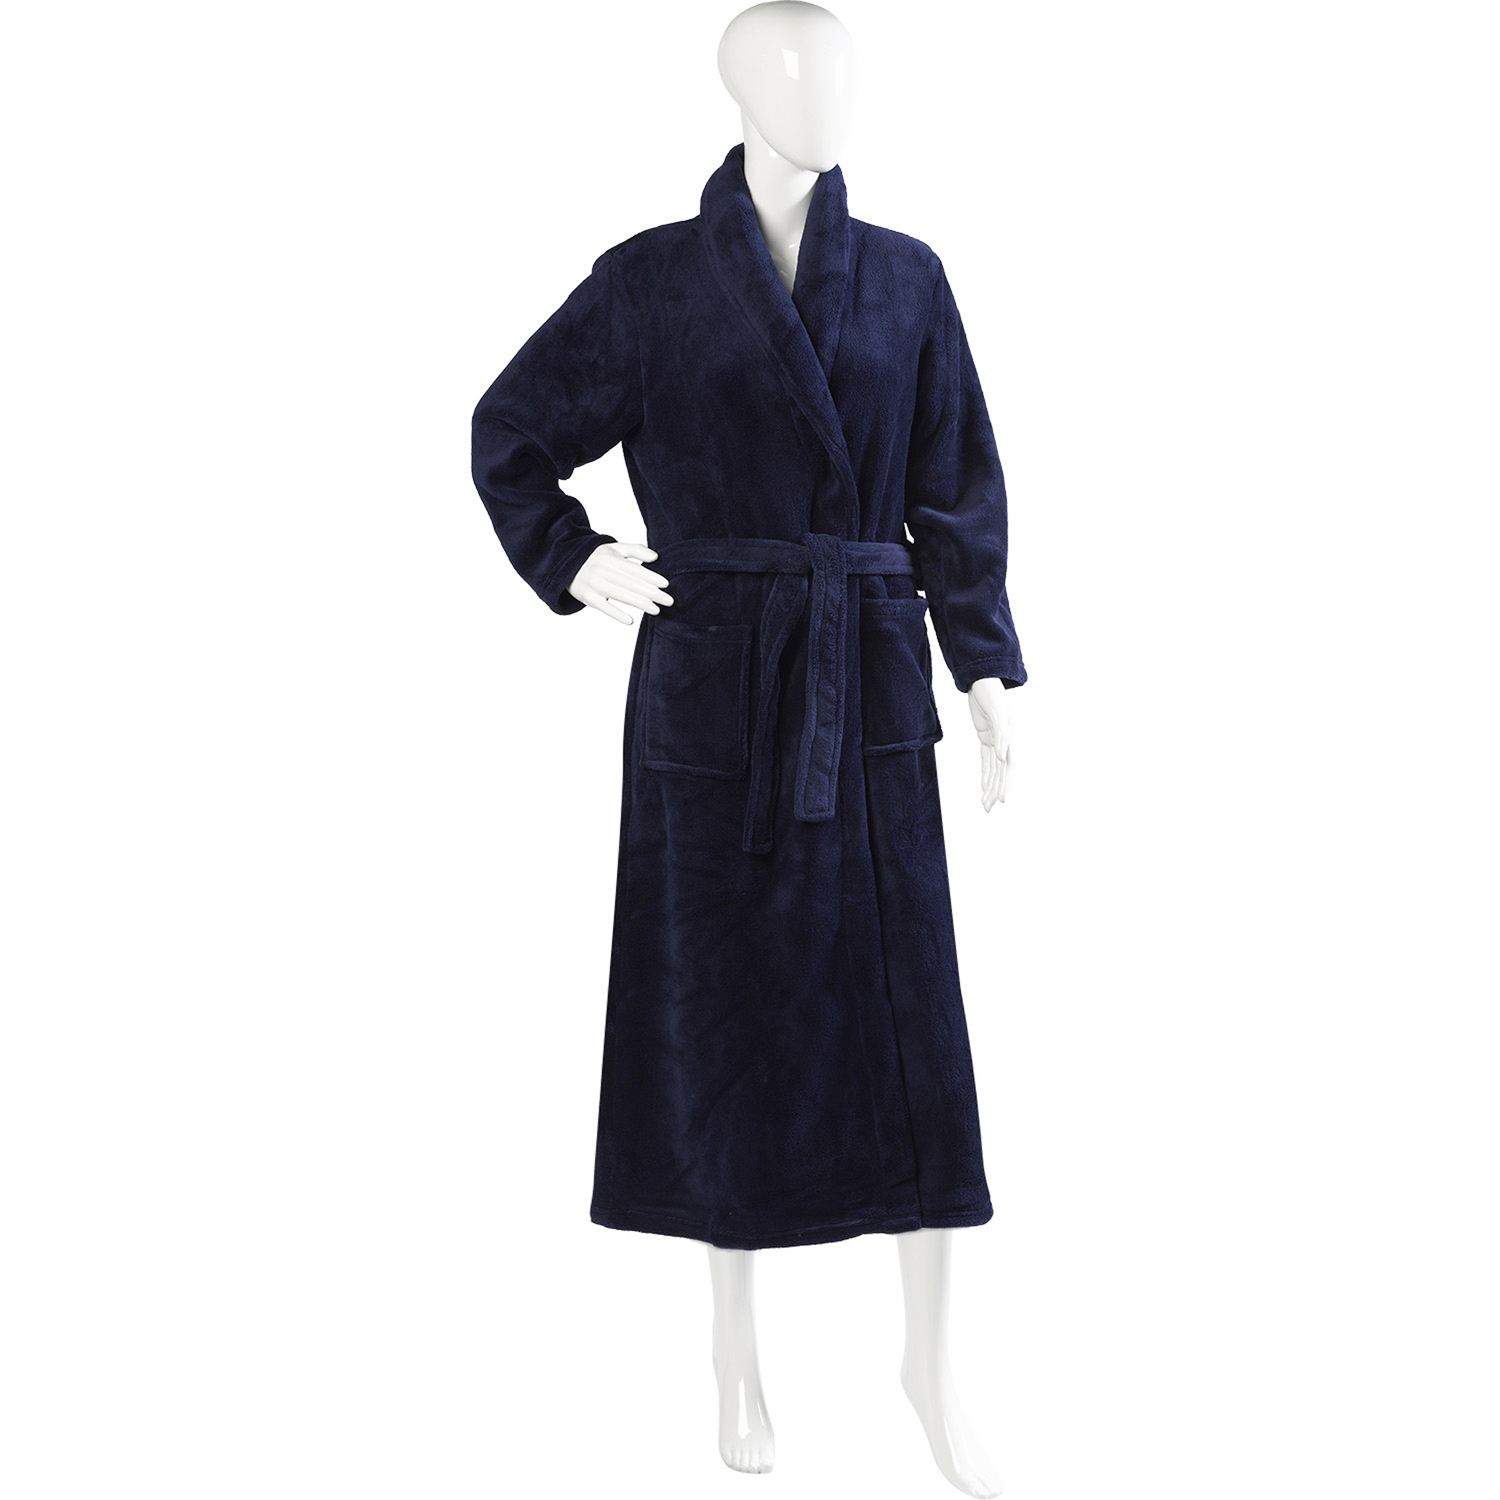 Buy Dressing gowns from the Womens department at Debenhams. You'll find the widest range of Dressing gowns products online and delivered to your door. Shop today! Pink spot embossed fleece long sleeve dressing gown Save. Was £ Now £ B by Ted Baker Fawn embossed bow dressing gown Save. Was £ Now £